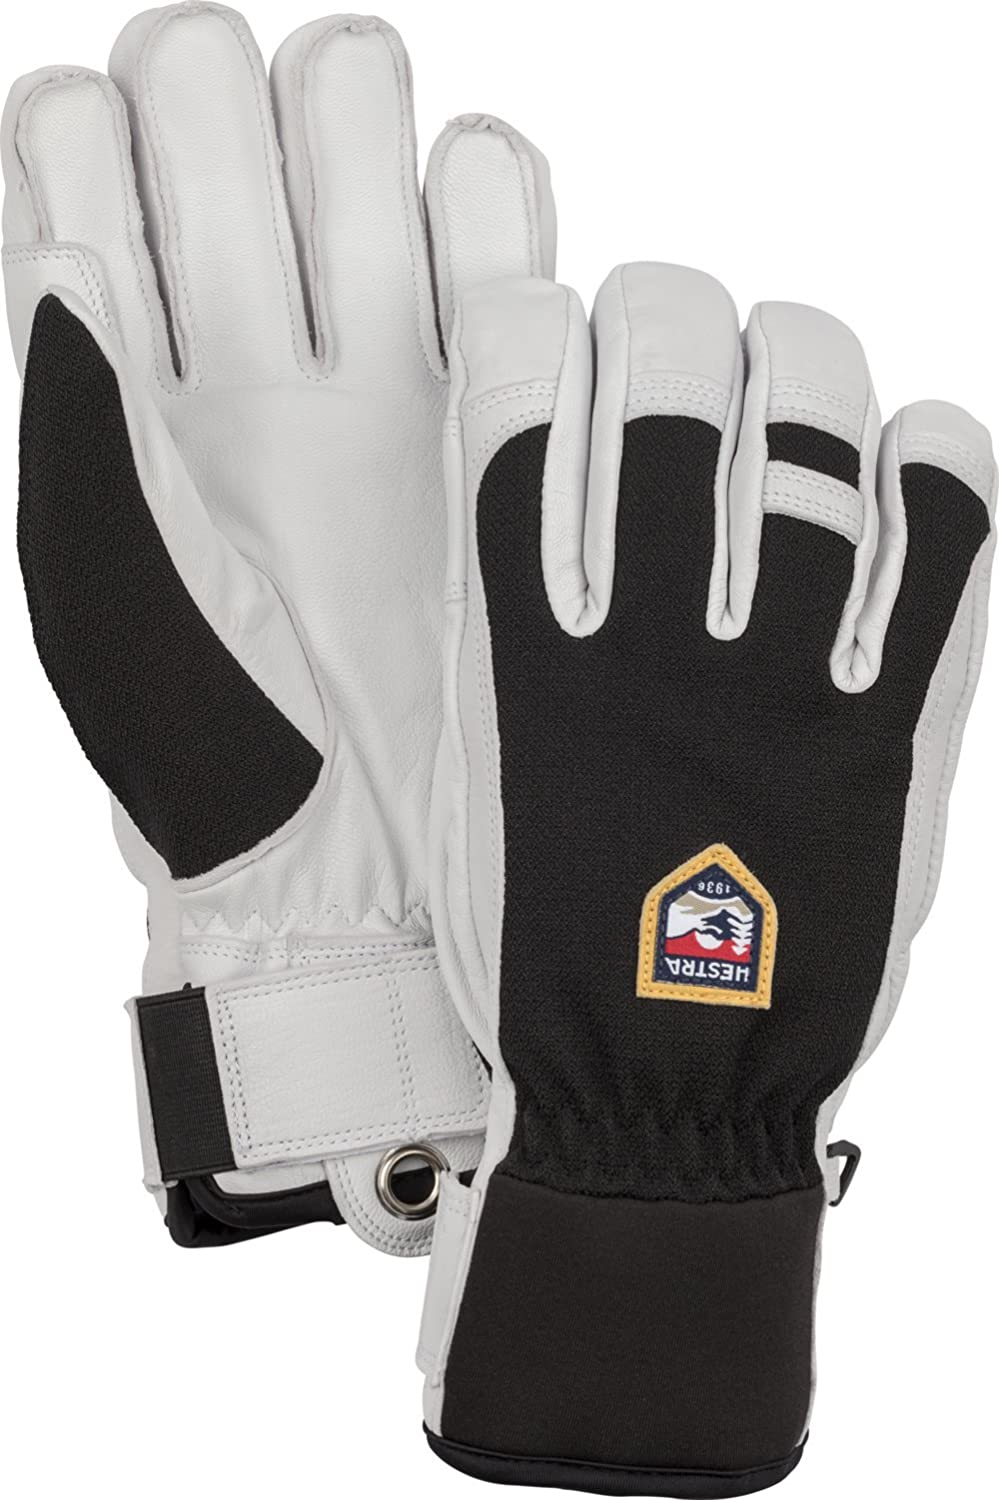 Hestra unisex Hestra Ski Gloves: Army Leather Patrol Winter Cold Weather Glove